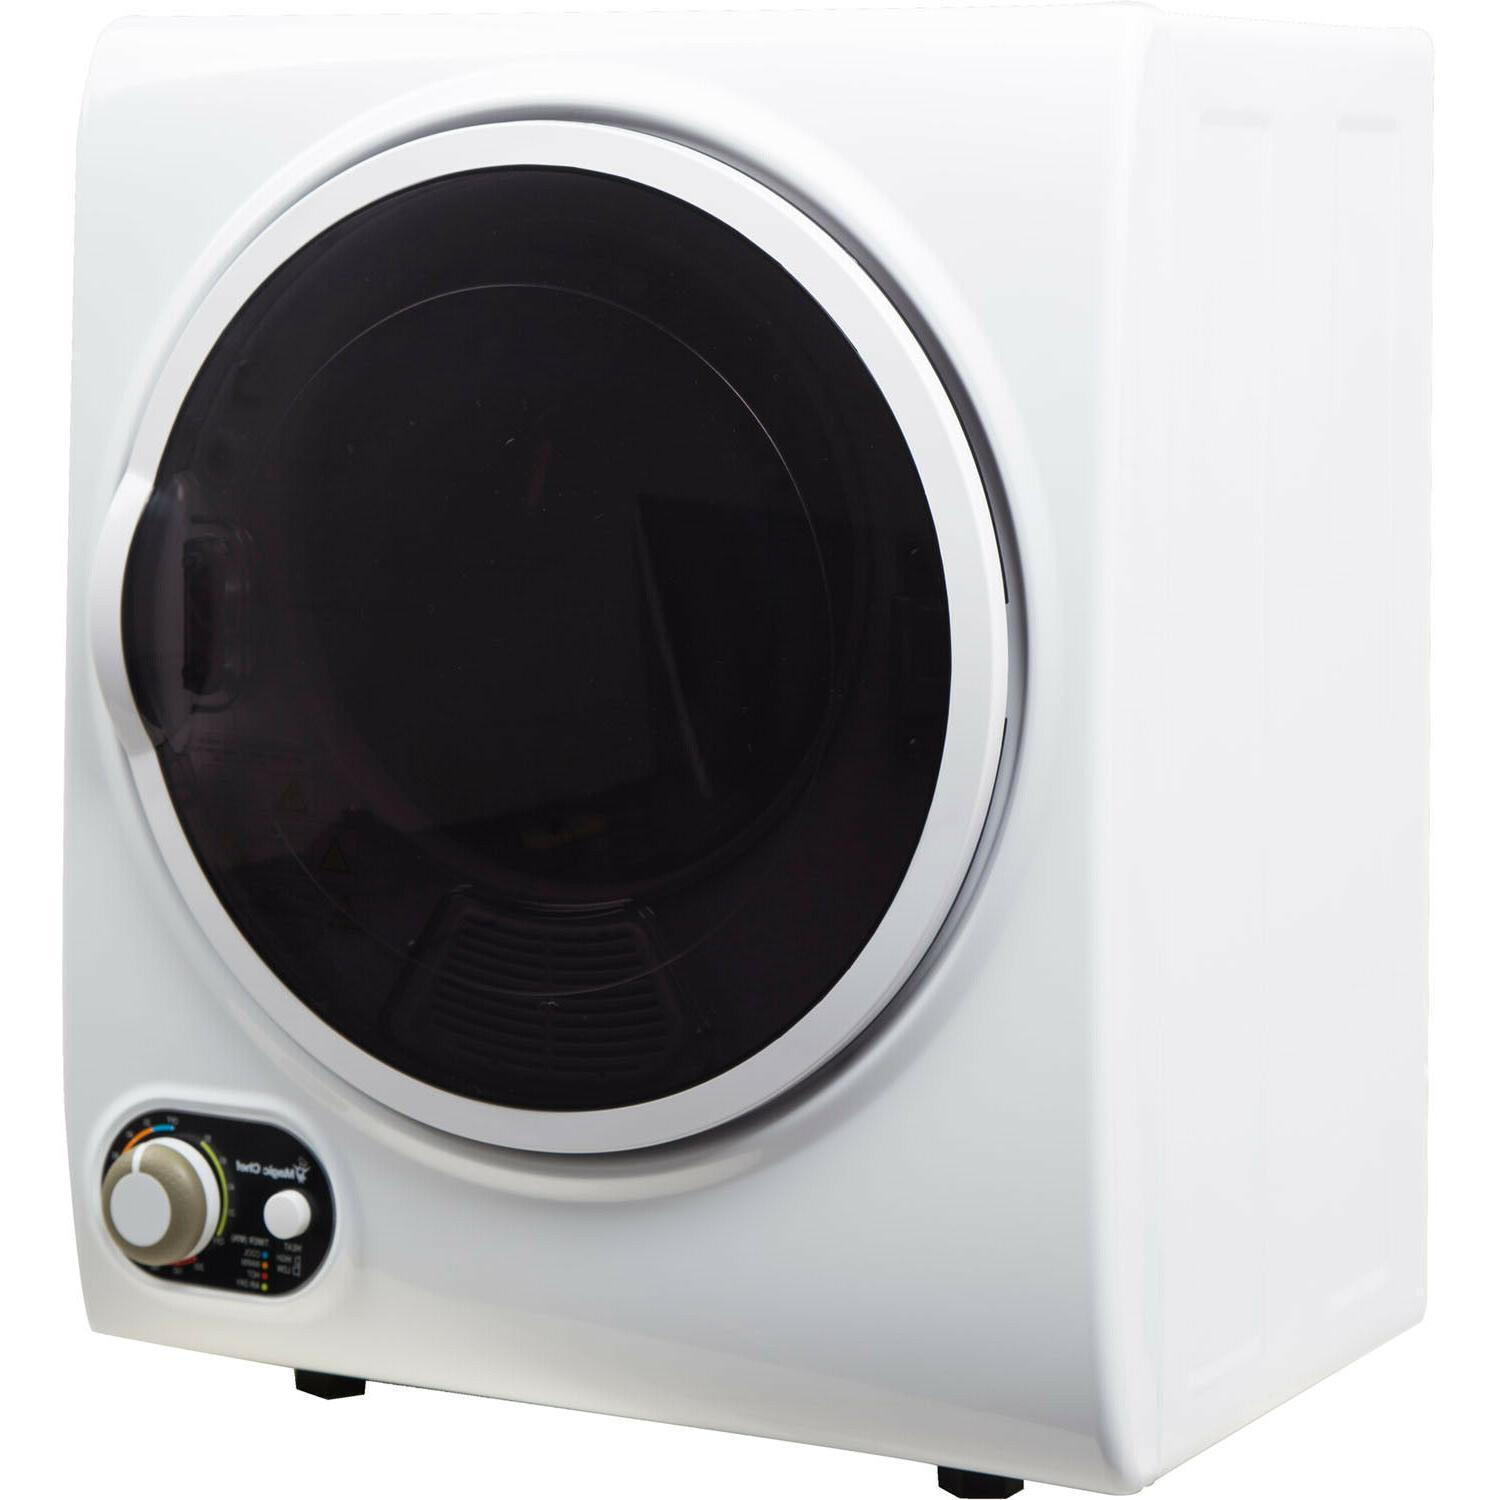 Compact 1.5 Mini Electric Clothes Dryer 120 Volt